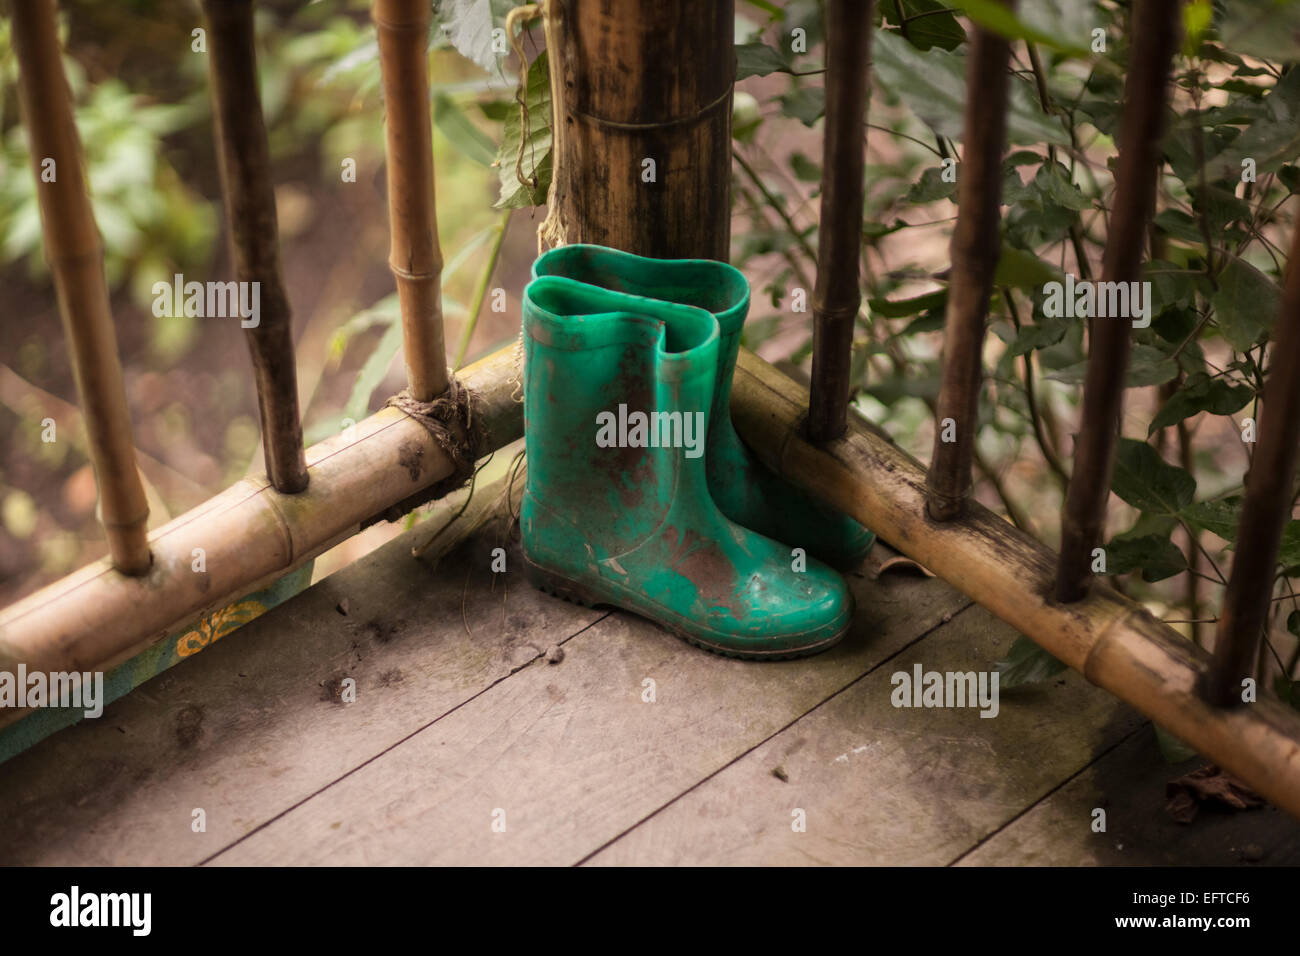 A pair of children's welly boots. Stock Photo